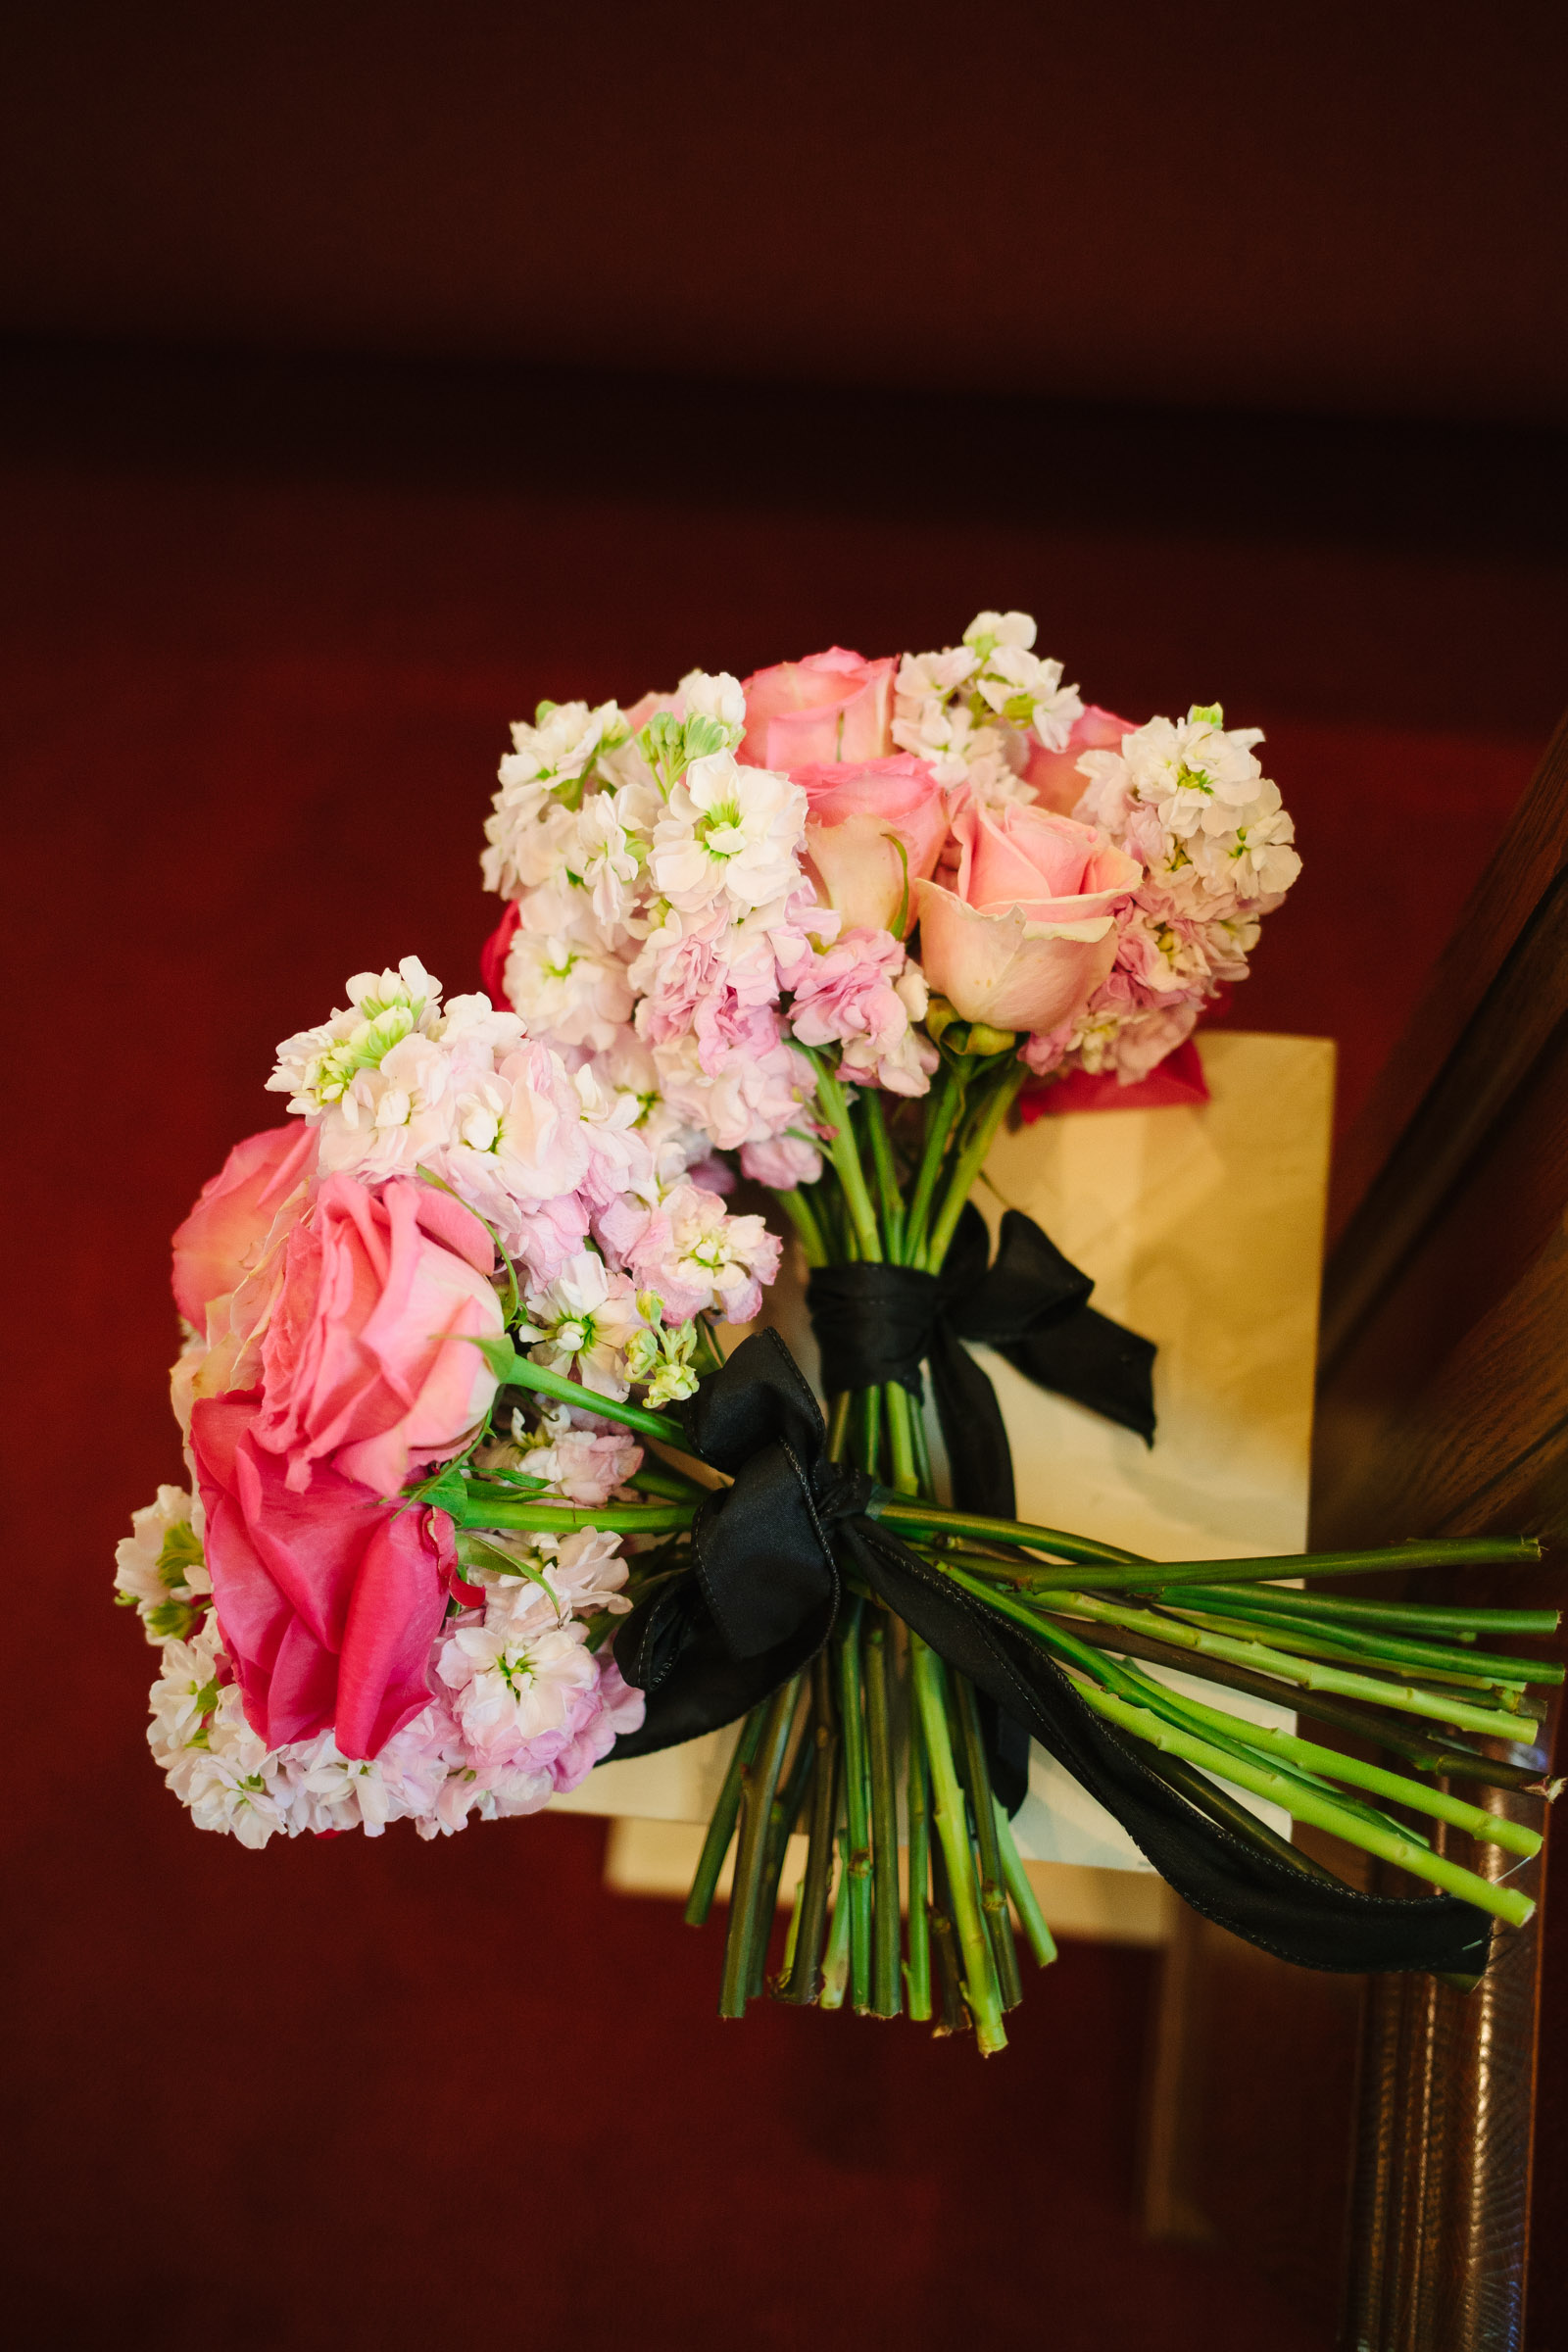 Two bouquets for those who have passed <3